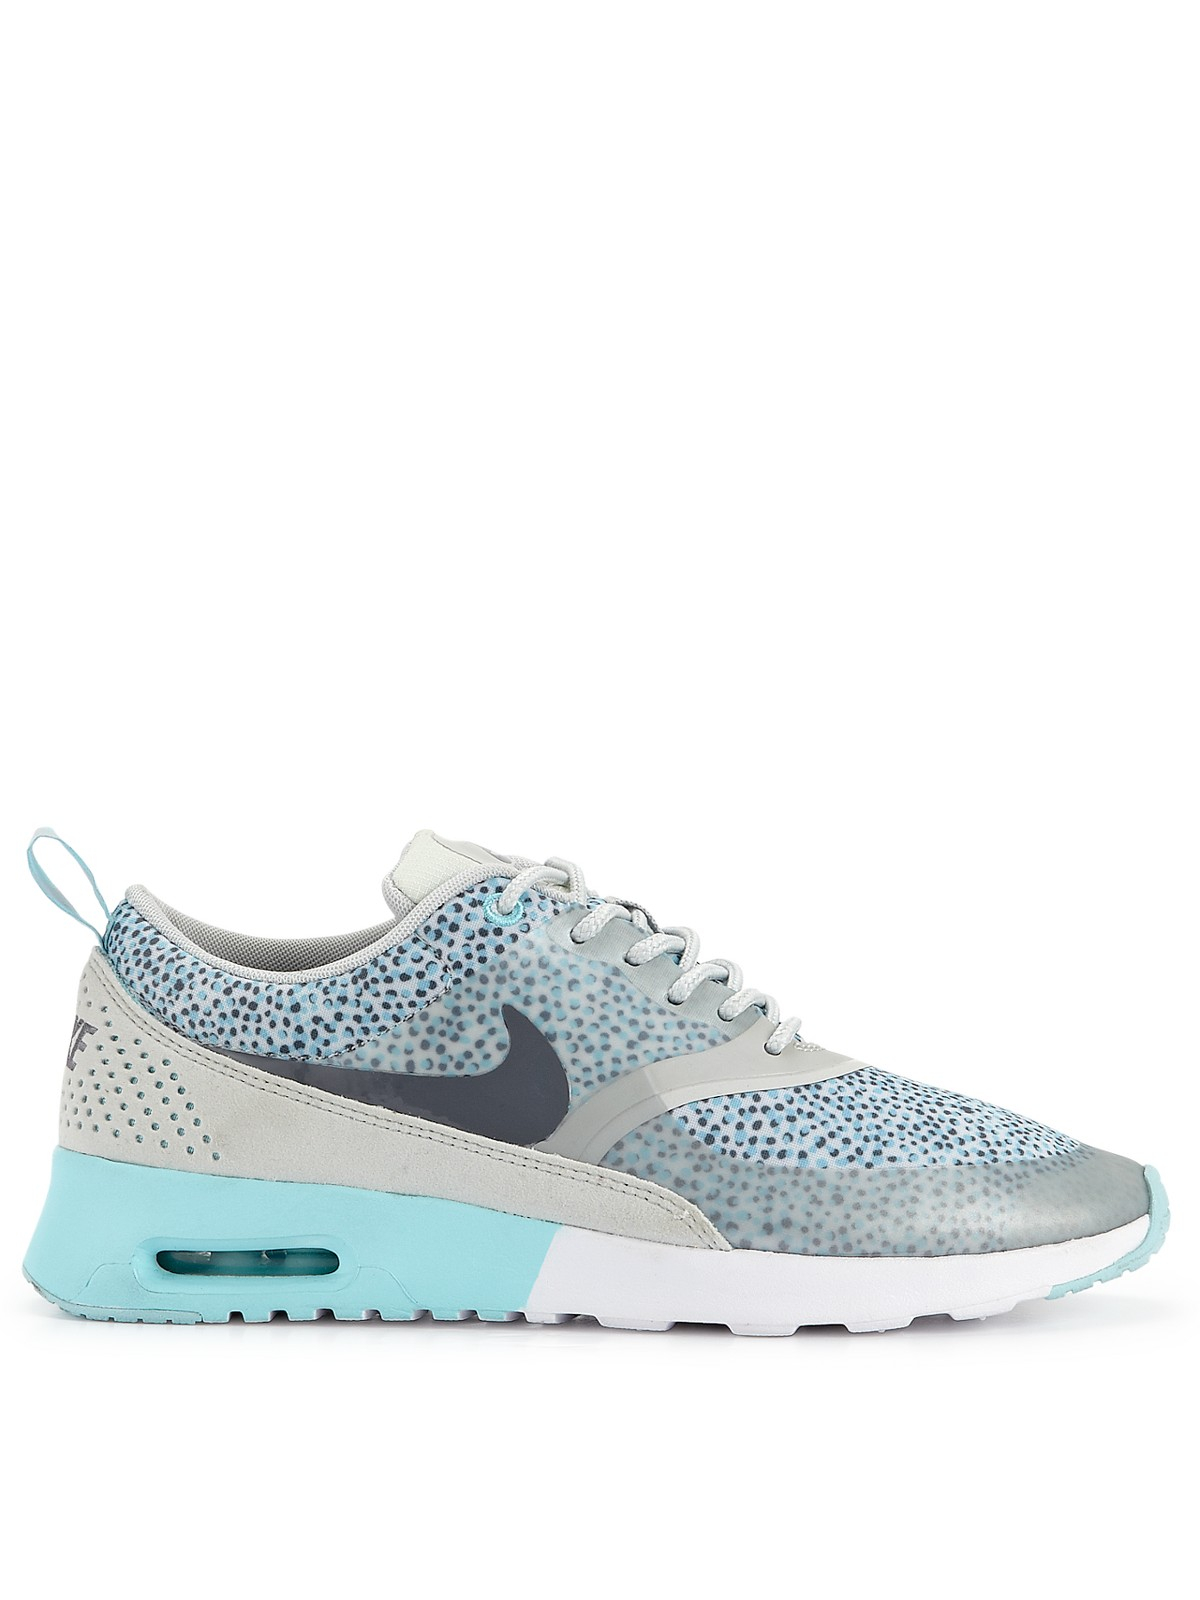 nike nike air max thea print fashion trainers in blue for. Black Bedroom Furniture Sets. Home Design Ideas